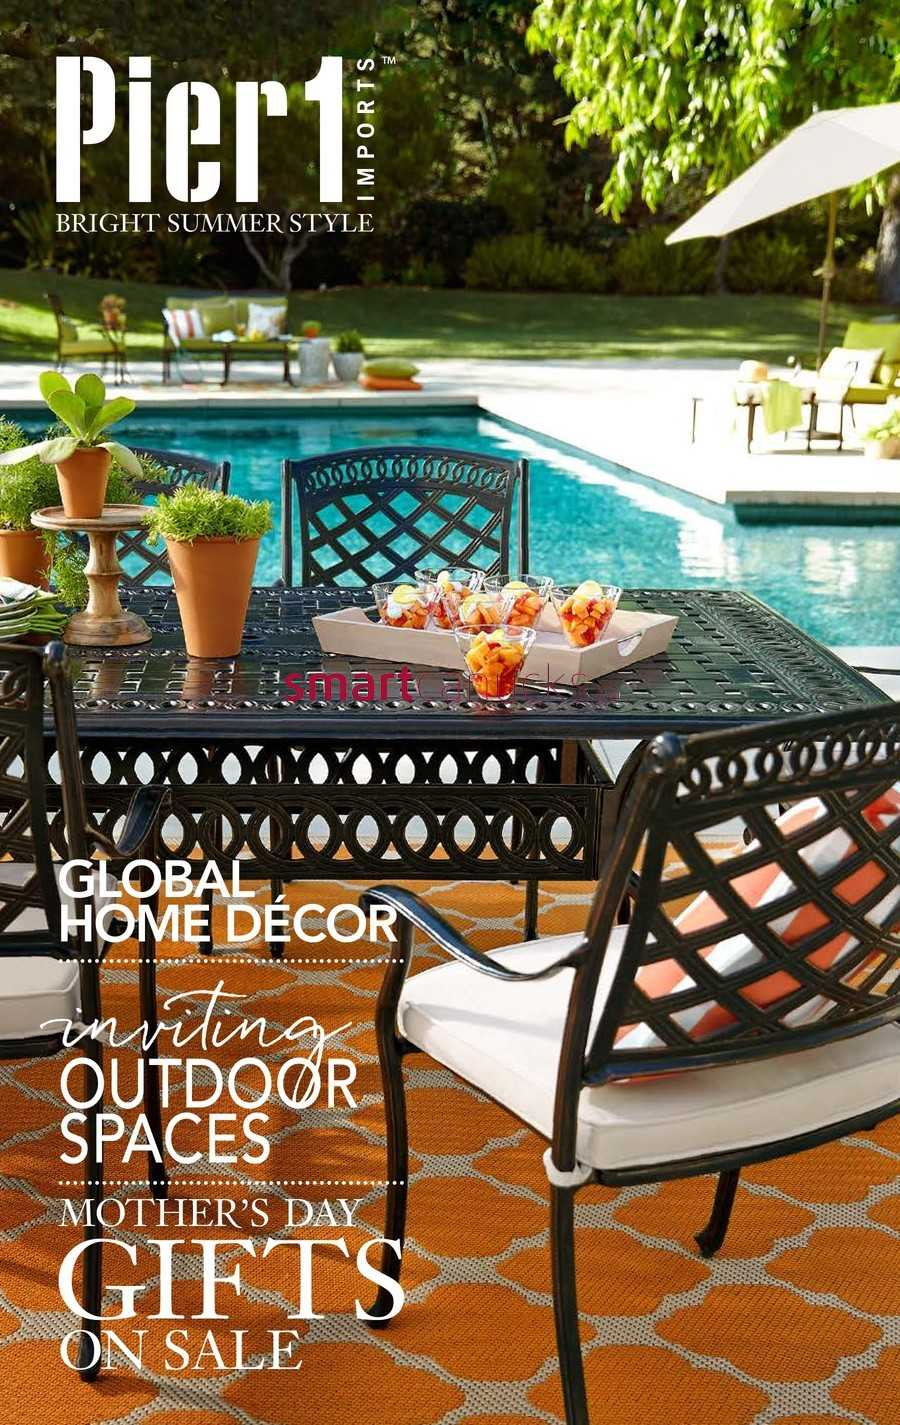 Pier 1 Imports Flyer April 25 to May 30. Pier 1 Imports Canada Flyers